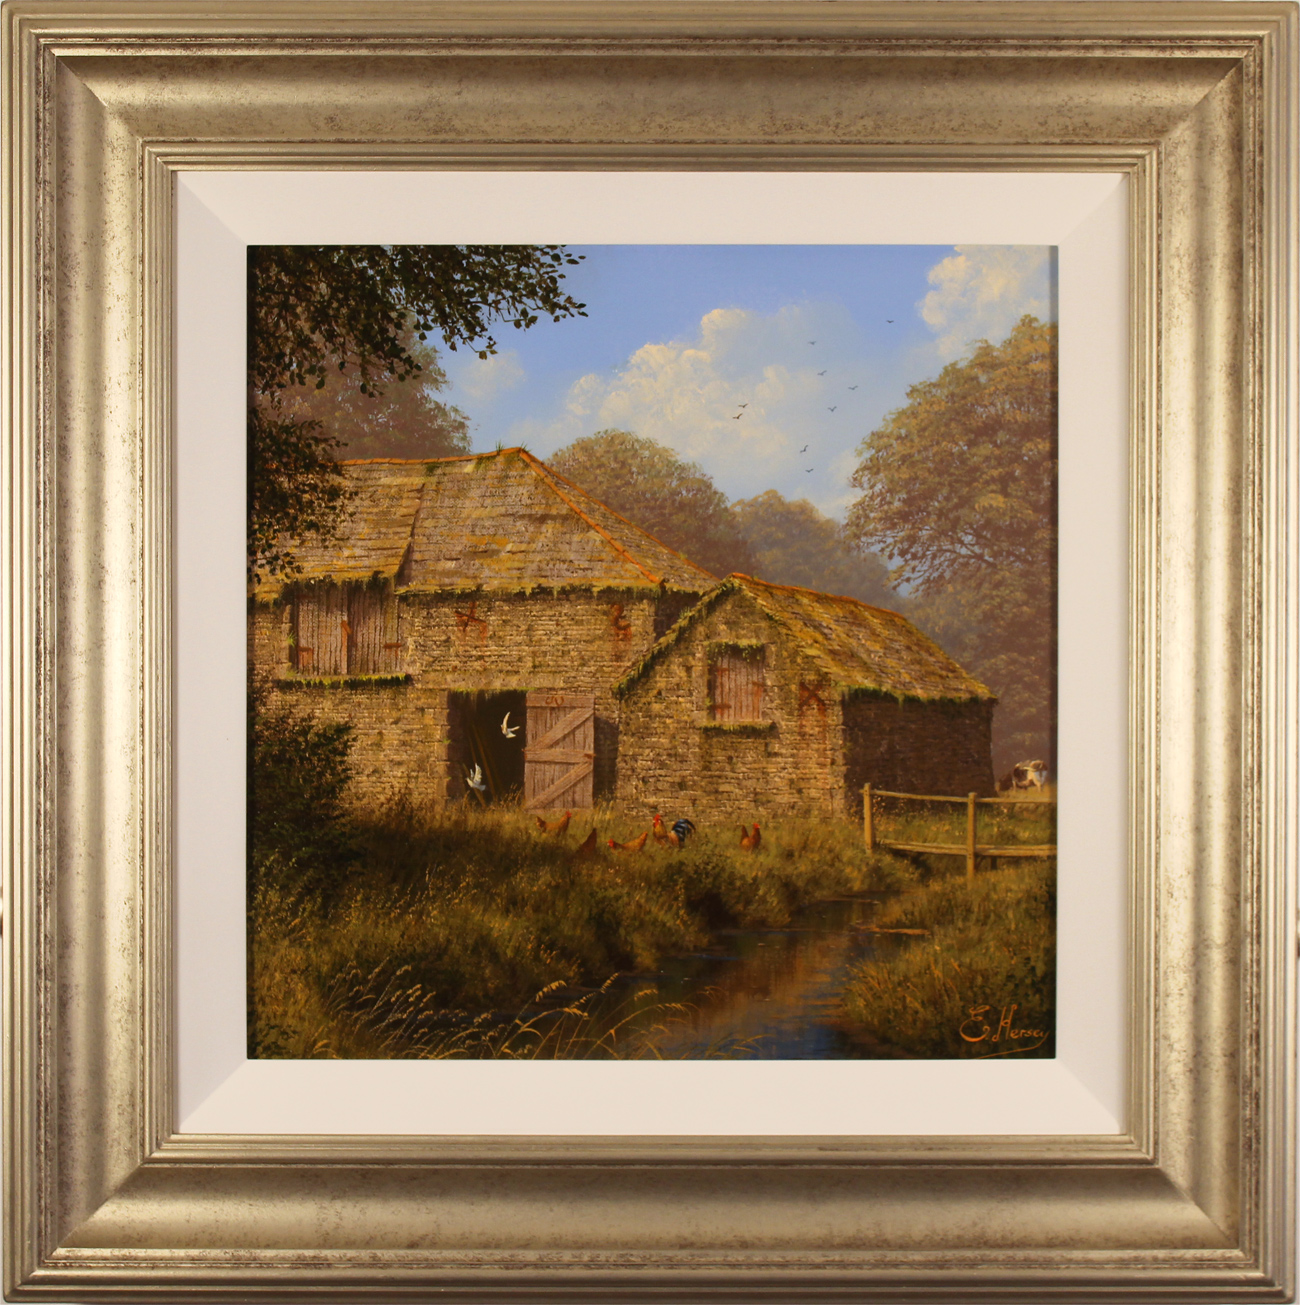 Edward Hersey, Original oil painting on canvas, Oakbridge Farm, The Cotswolds, click to enlarge